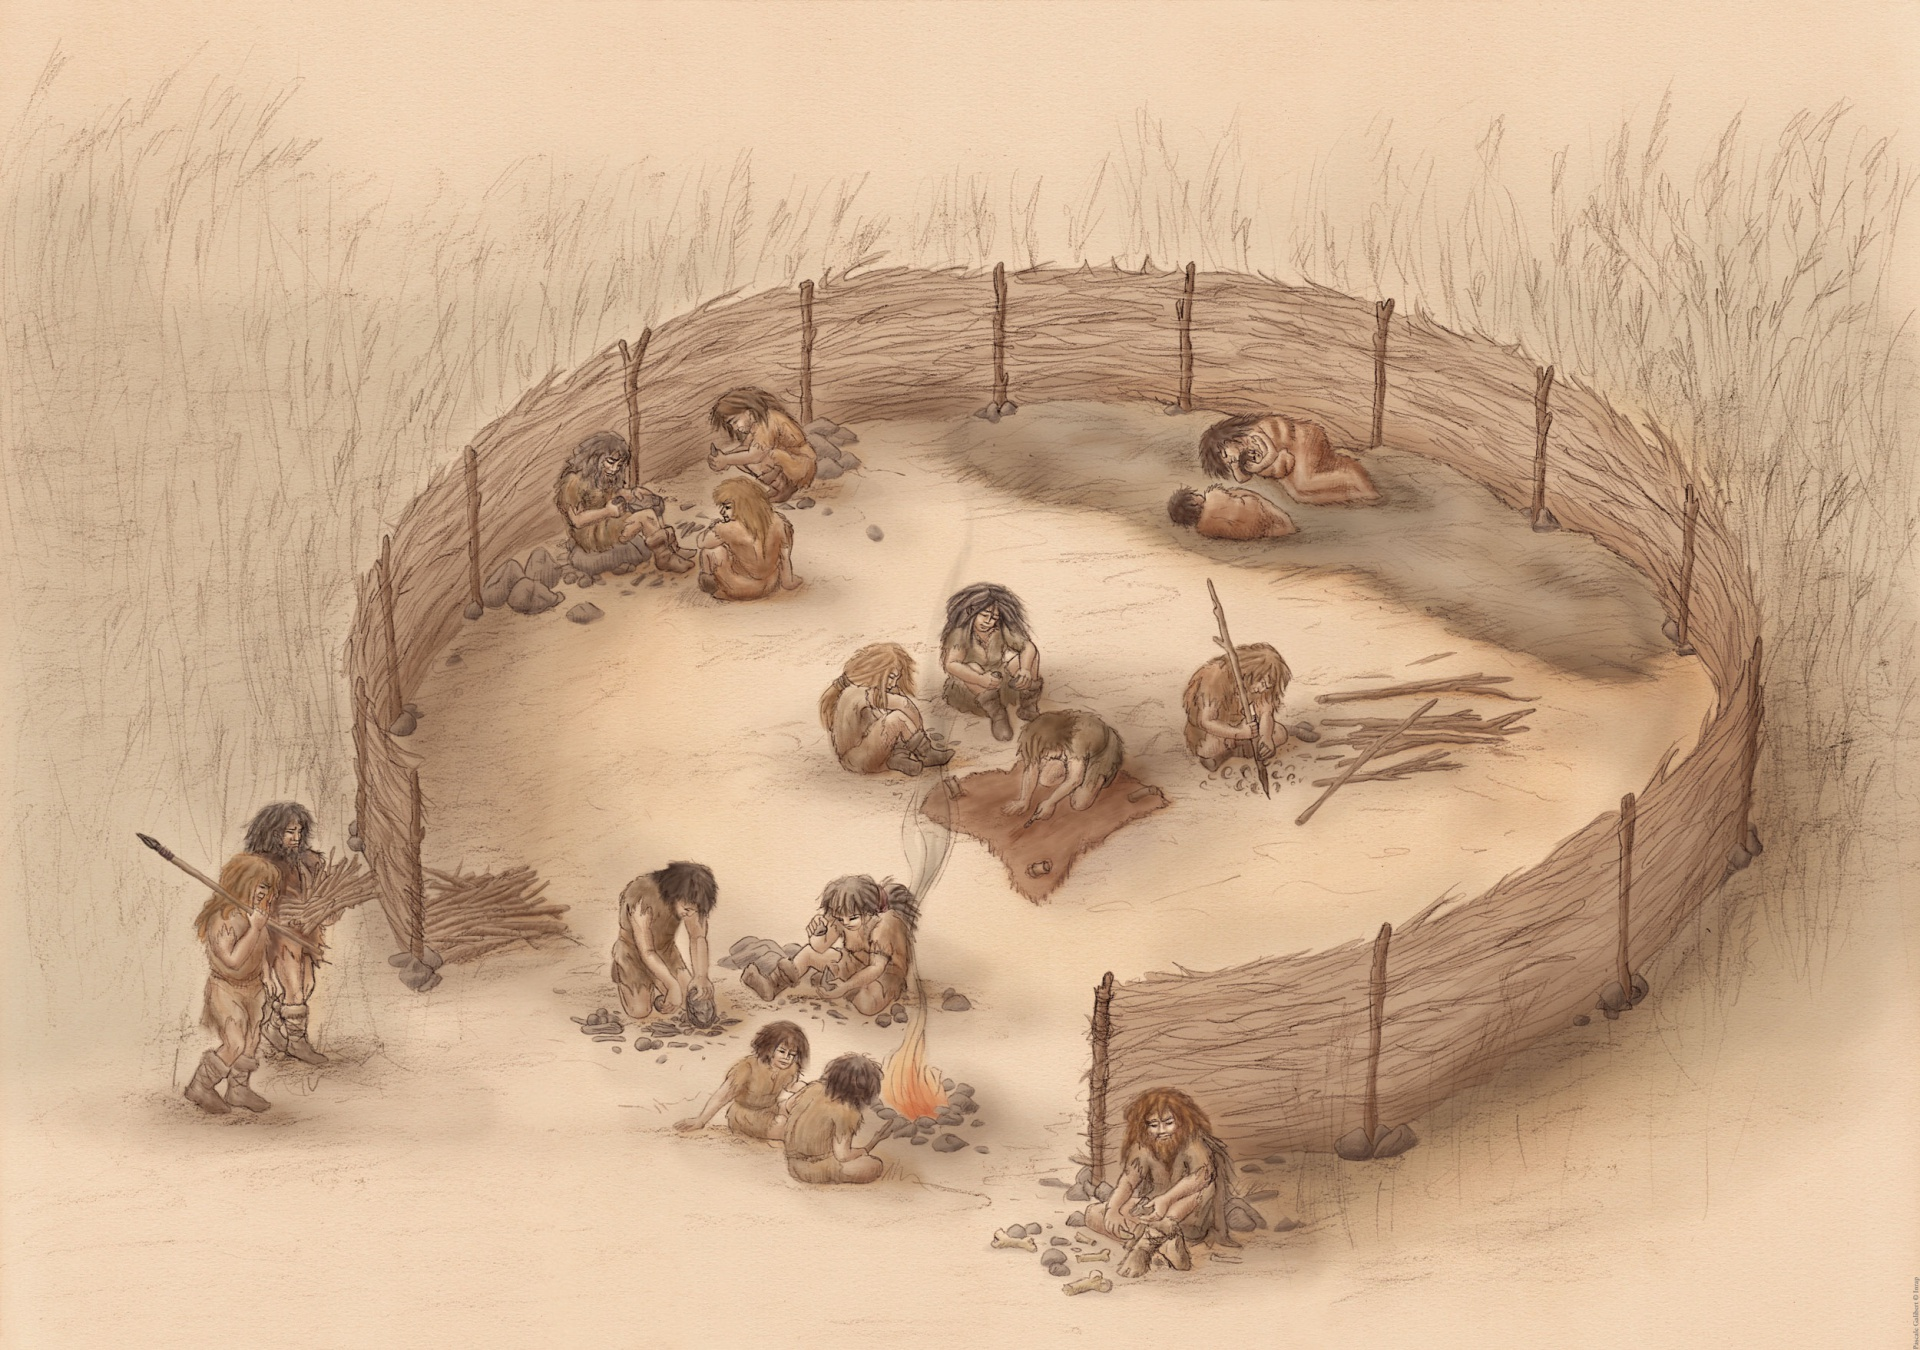 Structure And Characteristics Of Prehistoric To Modern Hunter Gatherers